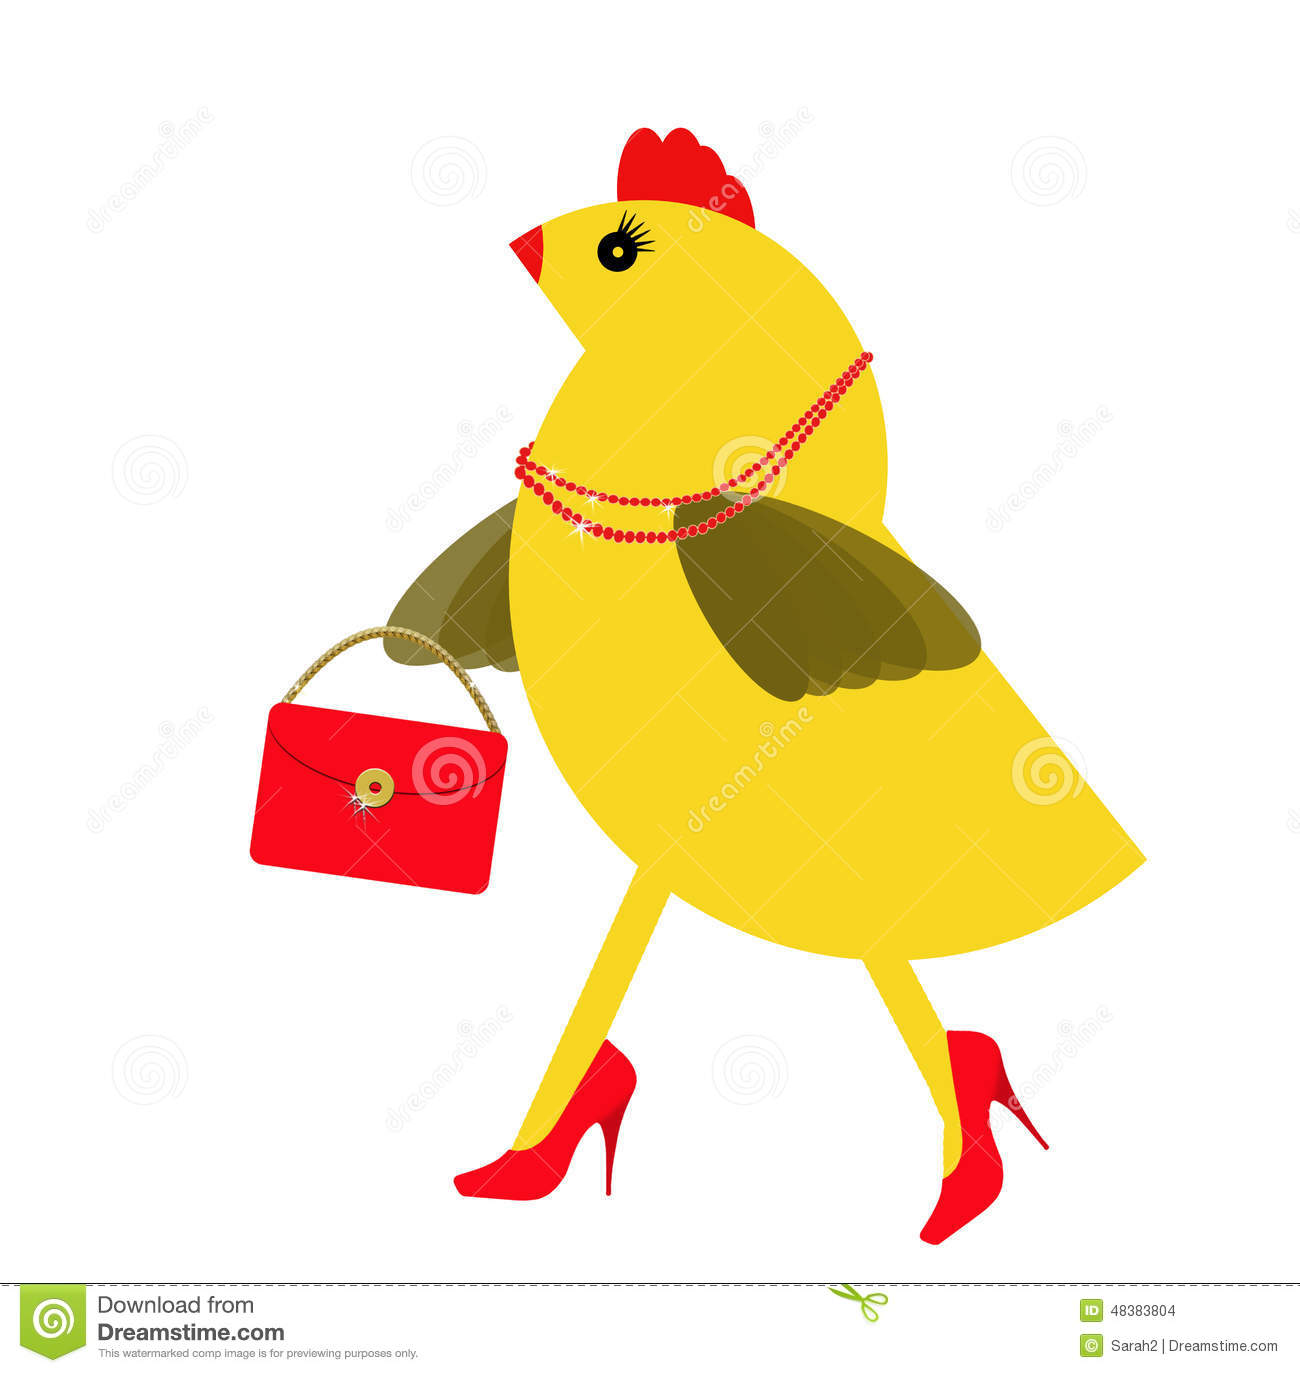 Stock Illustration Spring Chicken Character Bling Handbag Fun Hen Young Heart Old Bird Still Lookout Oldies Humour Image48383804 in addition Freefall also The Brown Hor  324379613 as well Evil Looking Cartoon Vulture Vector 6997750 moreover The Lonely Mourning Dove 324609881. on fat cartoon bird